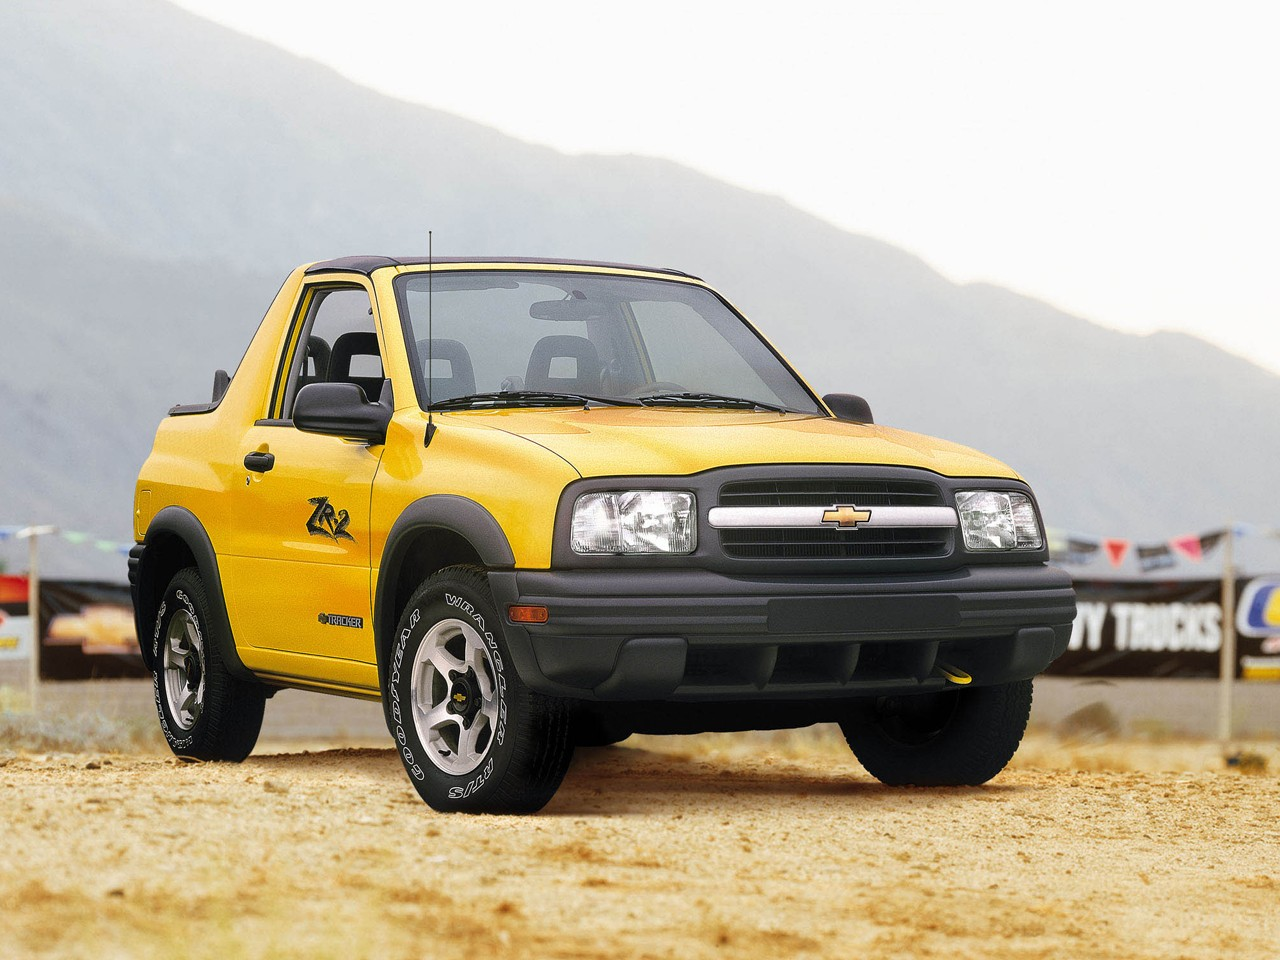 All Chevy 2001 chevy tracker mpg : CHEVROLET Tracker Convertible specs - 1999, 2000, 2001, 2002, 2003 ...